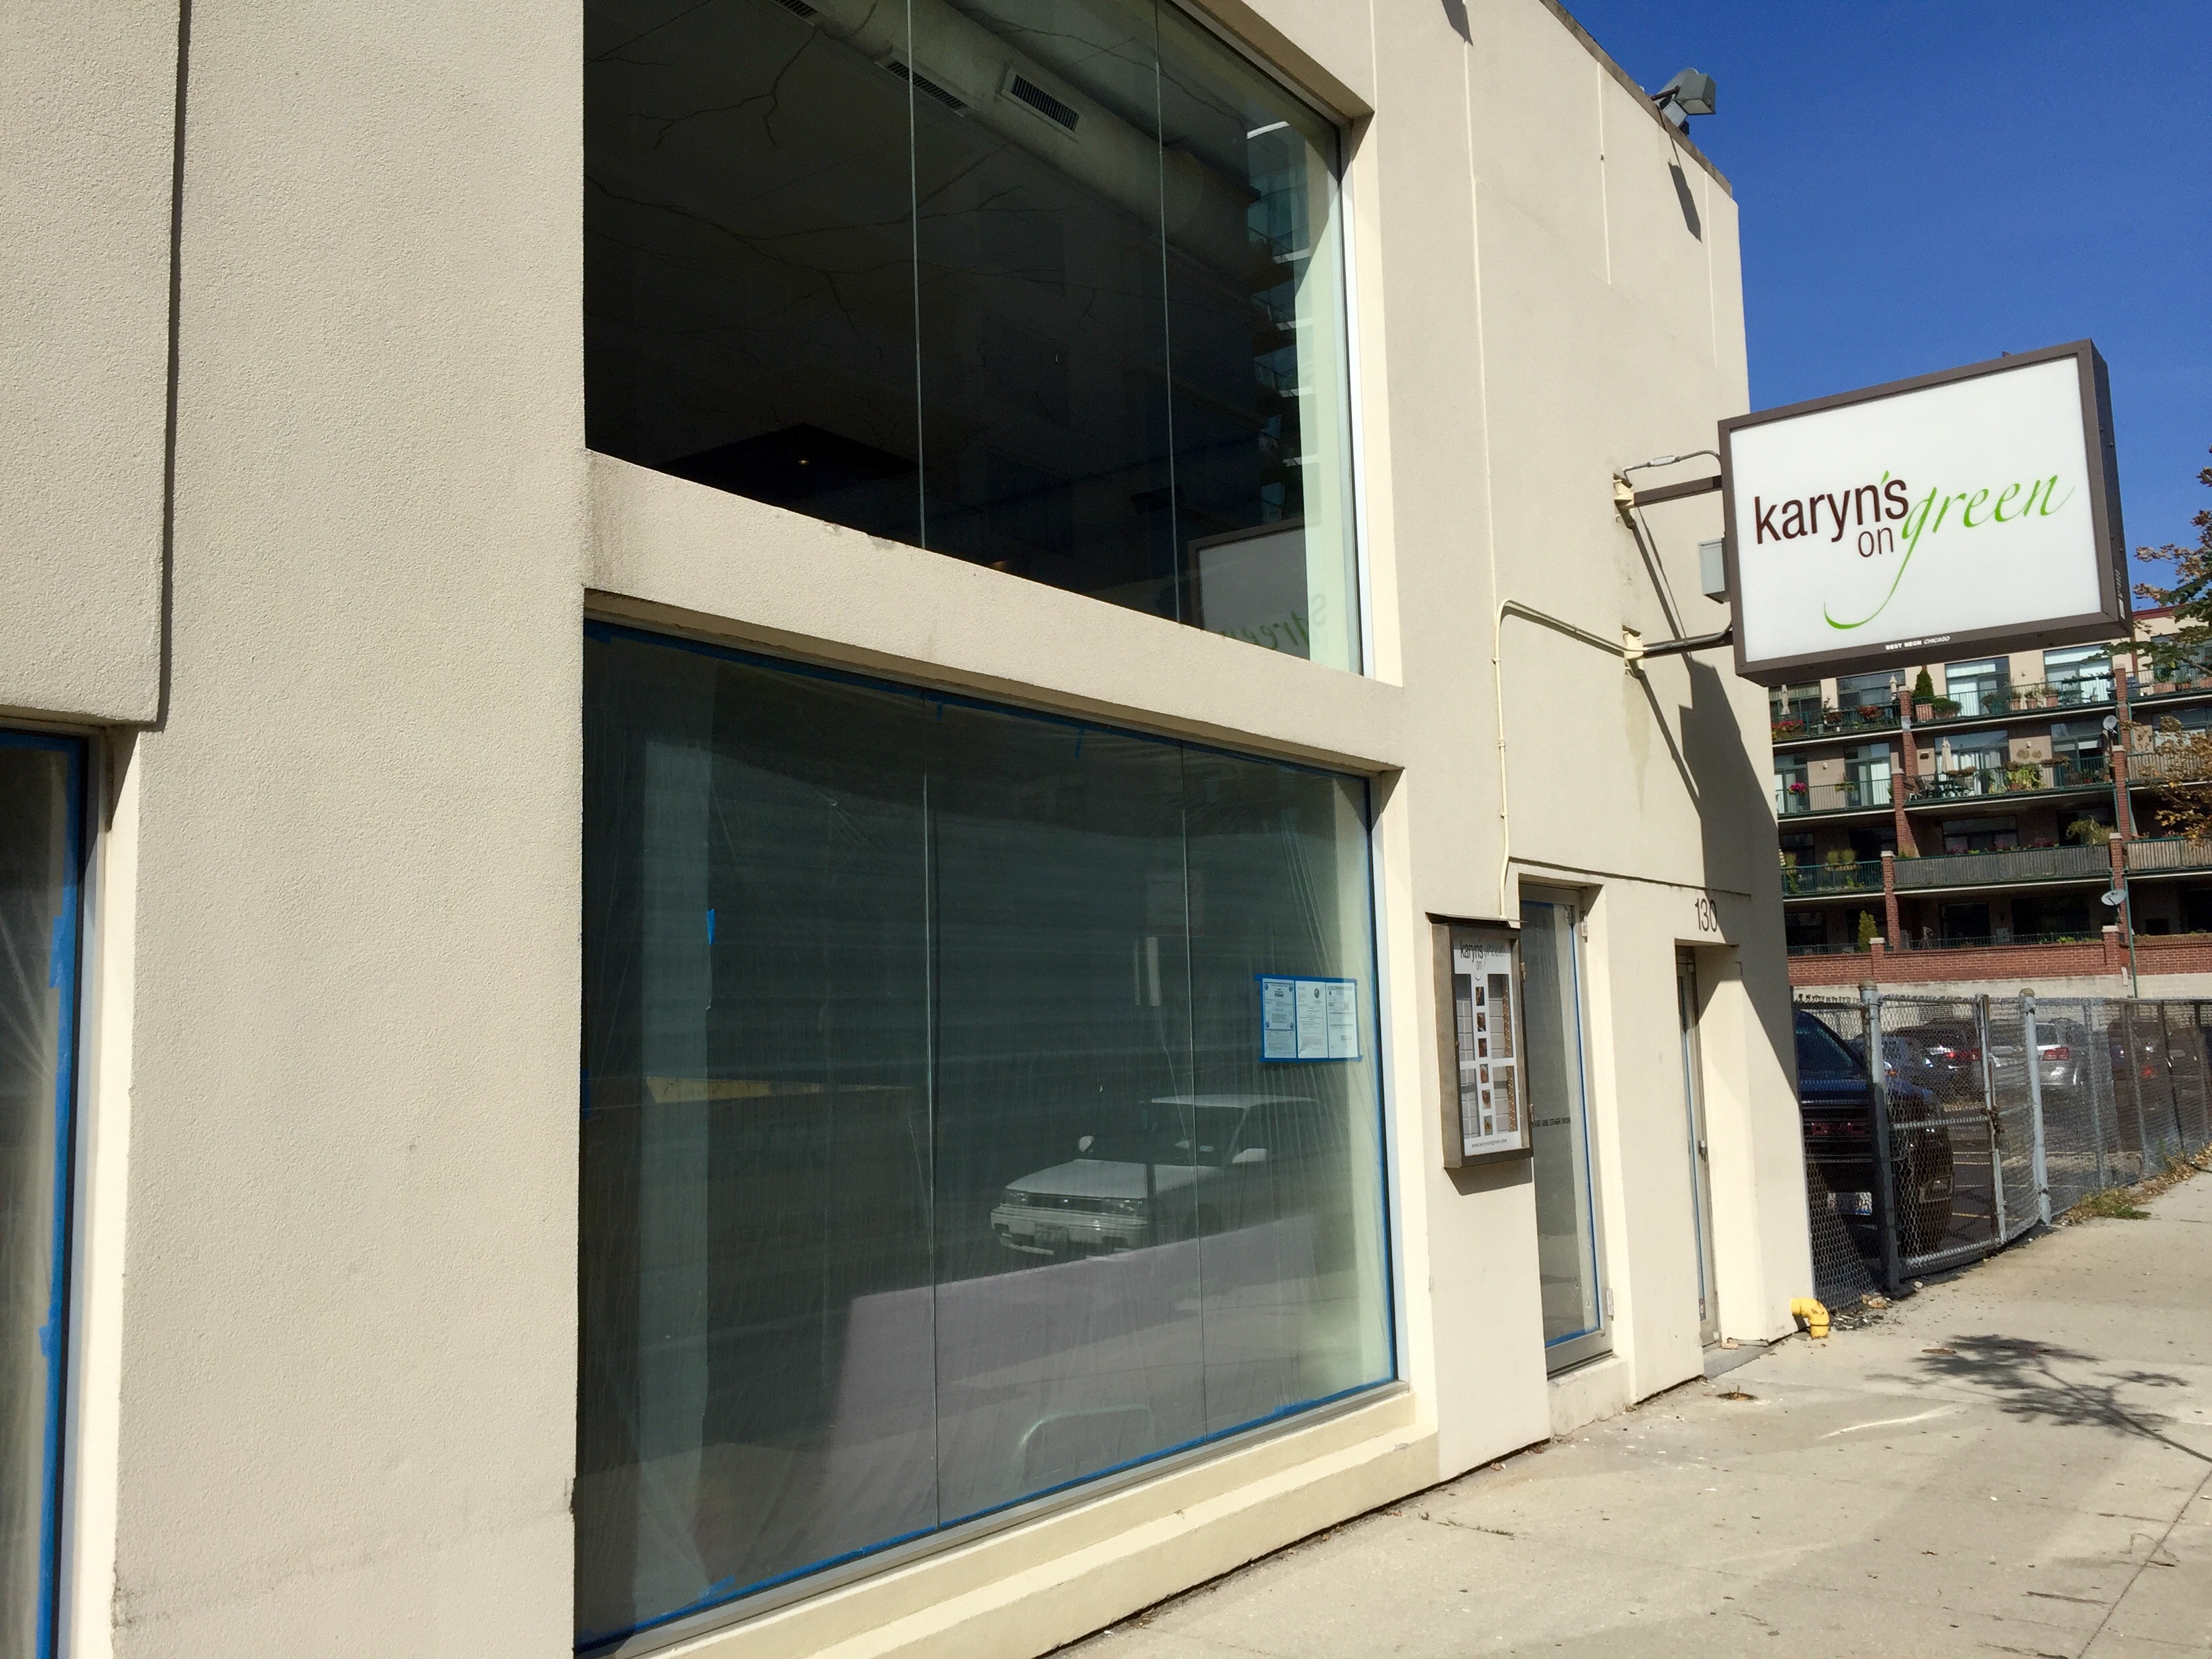 The former Karyn's on Green space